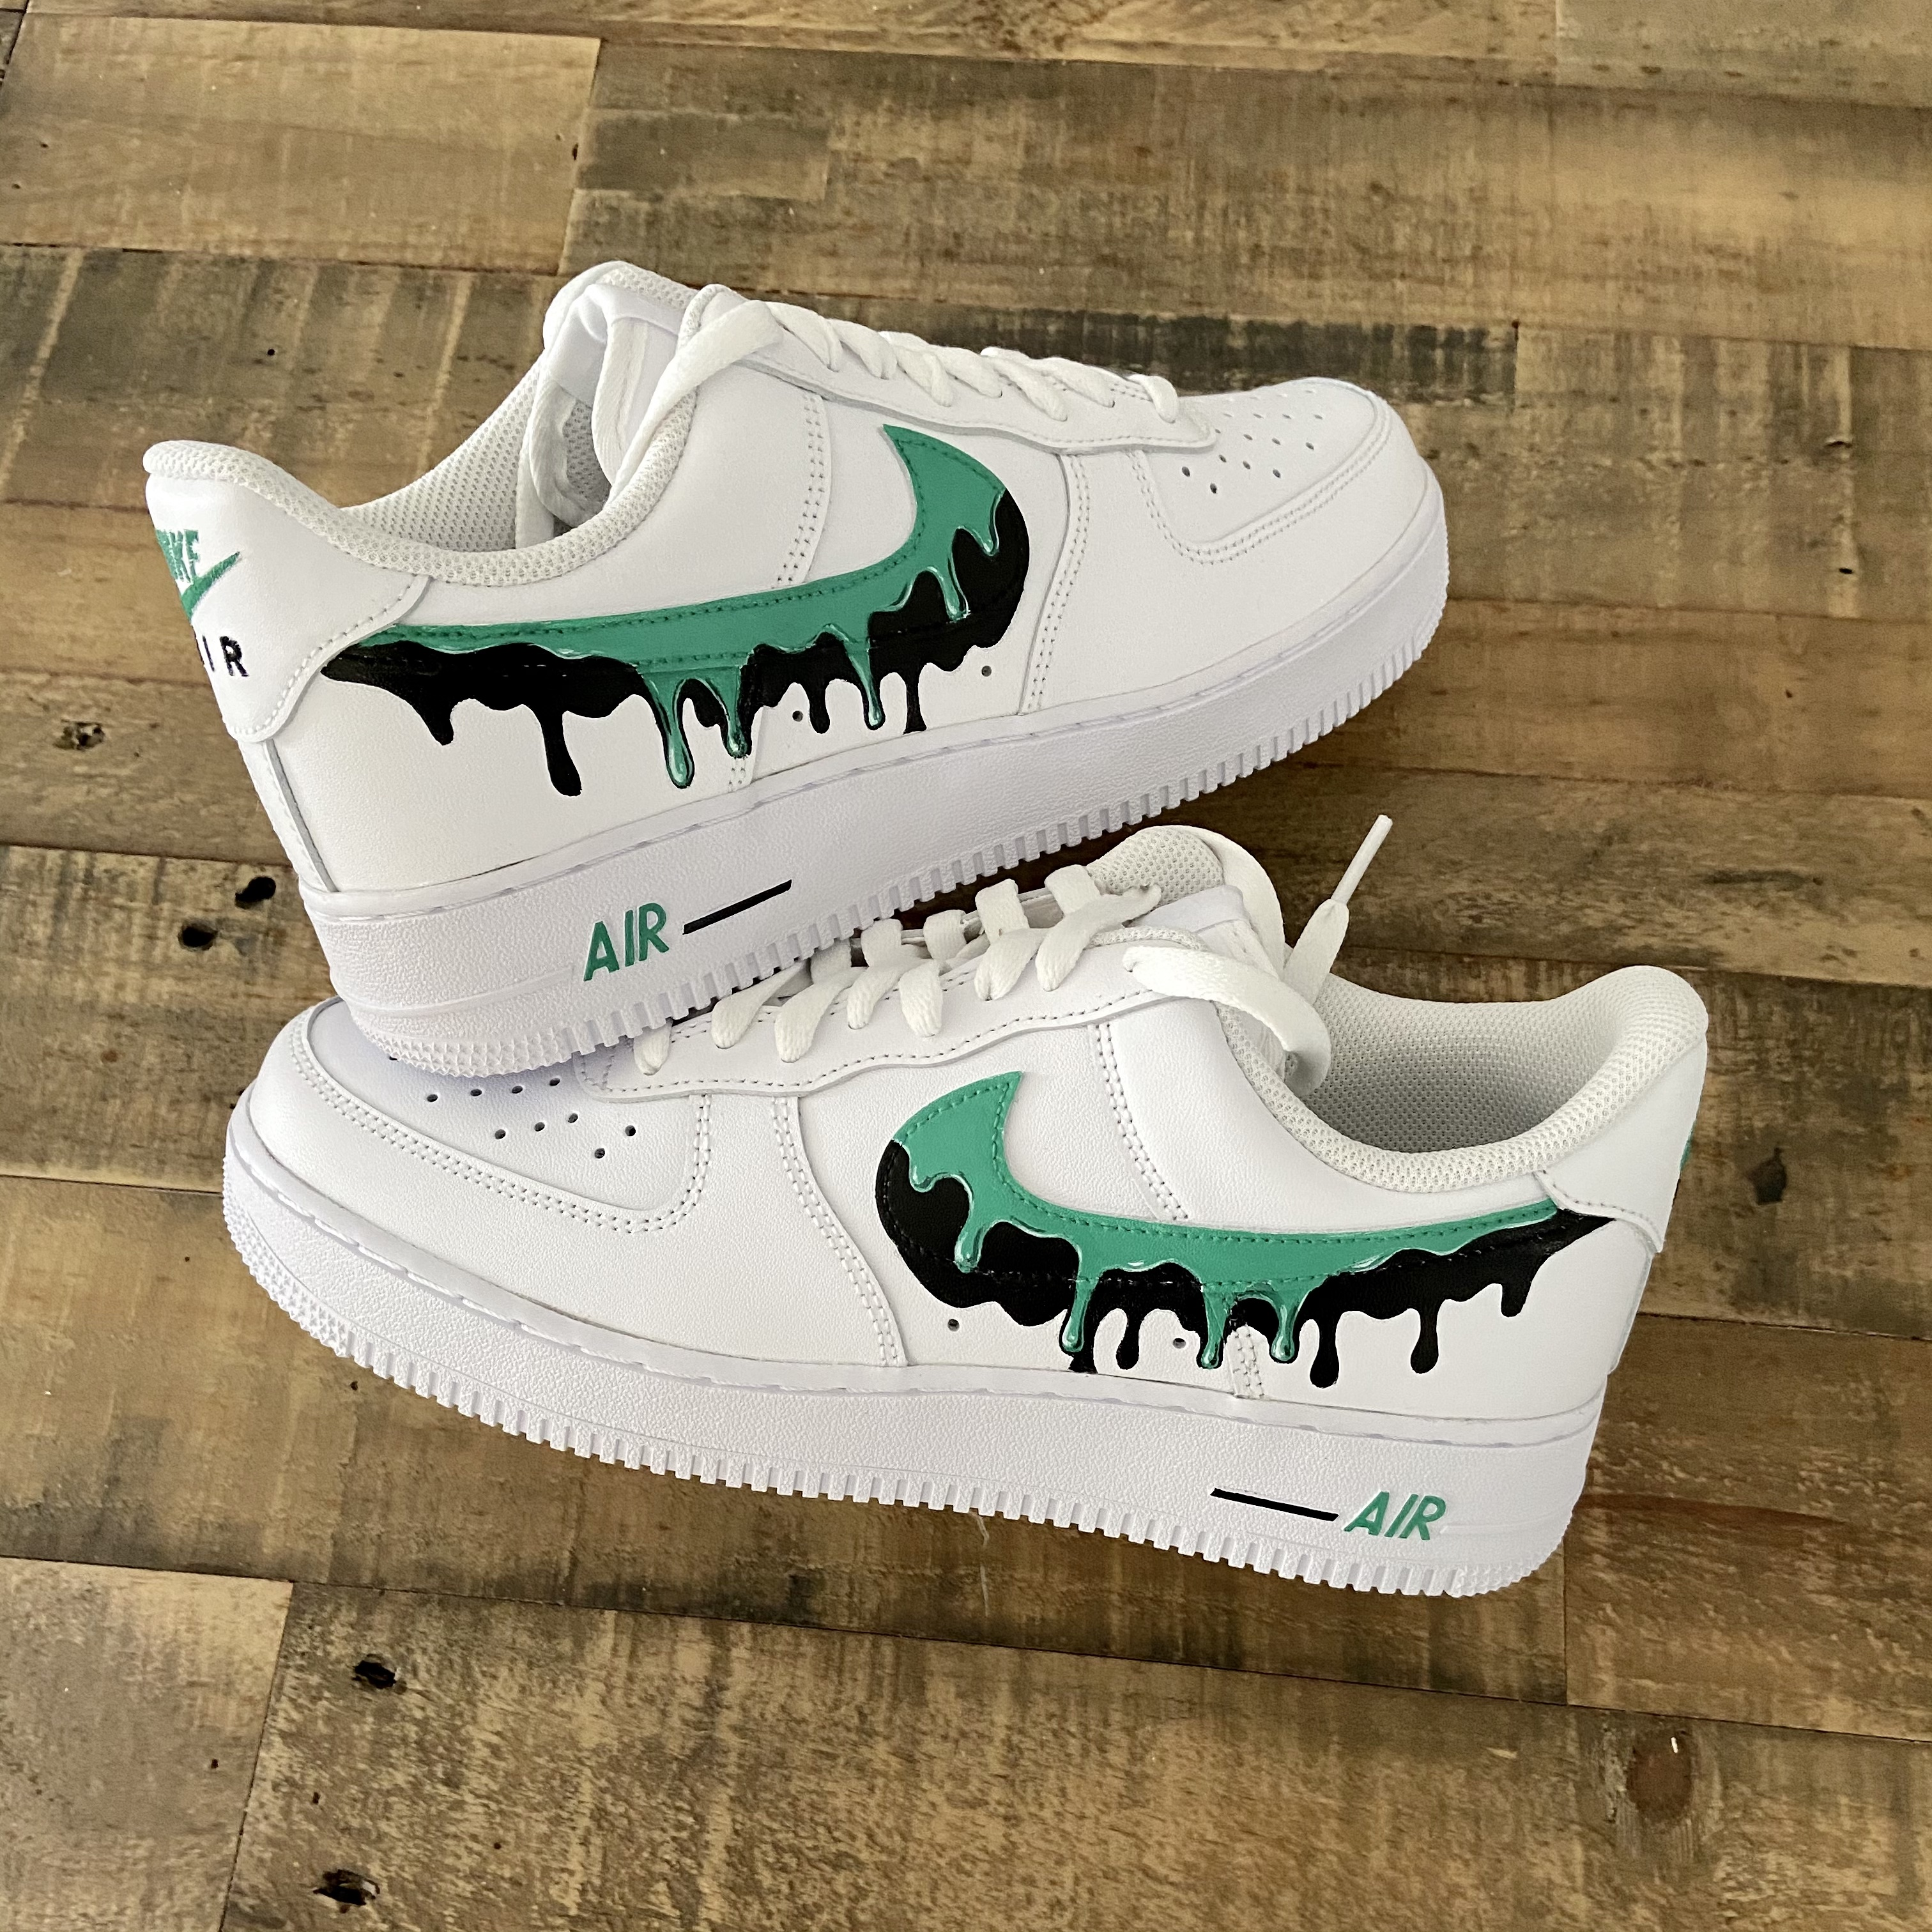 Nike painted leather